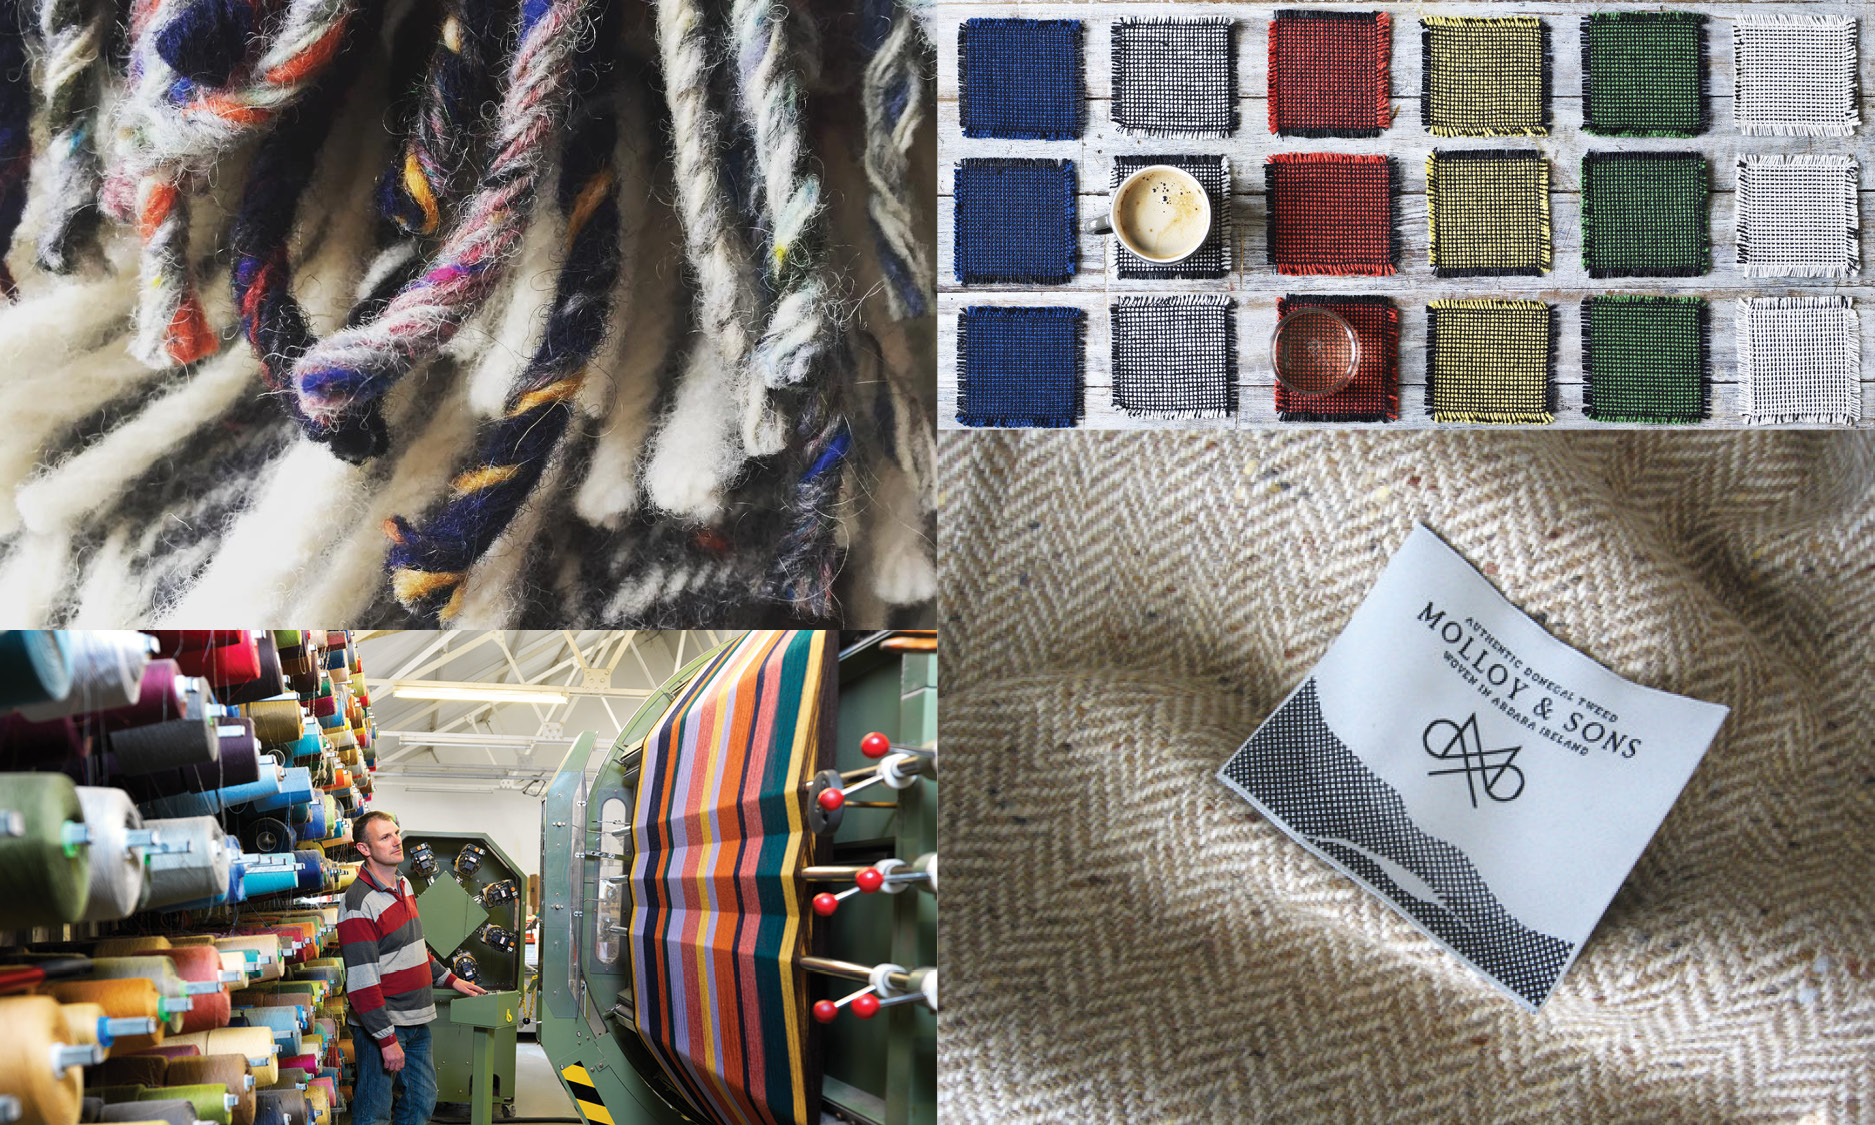 Clockwise from top left: Stable, Mourne Textiles, Molloy & Sons, McNutt